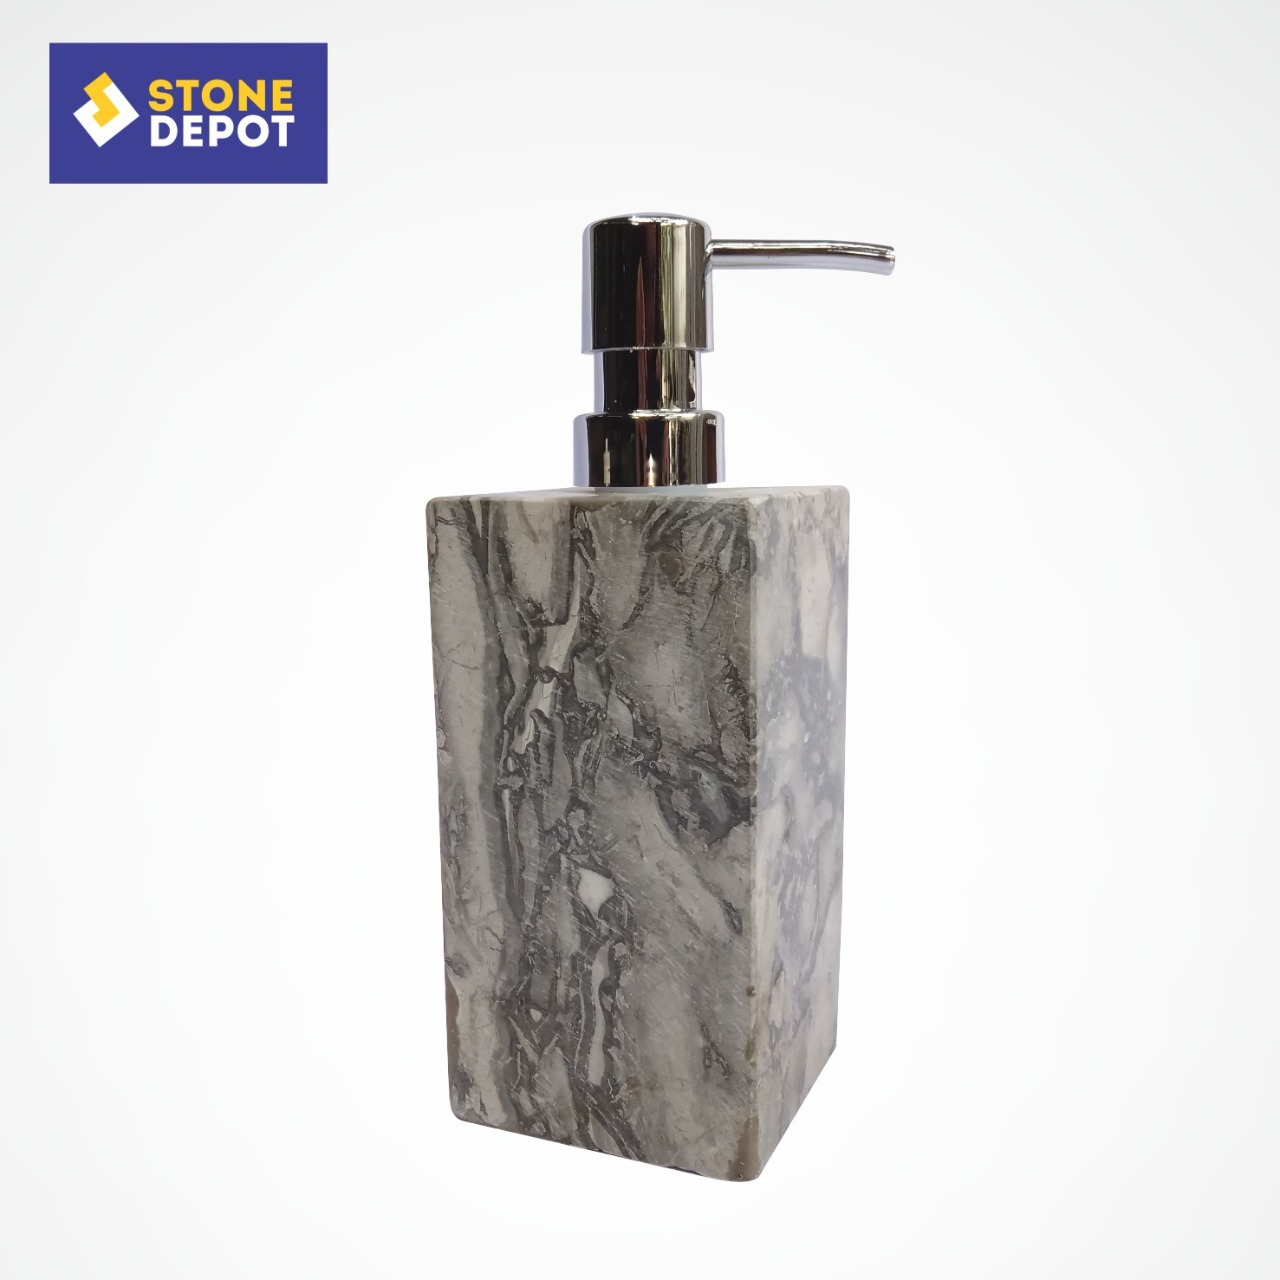 Bali Grey Marble Shampoo Dispenser